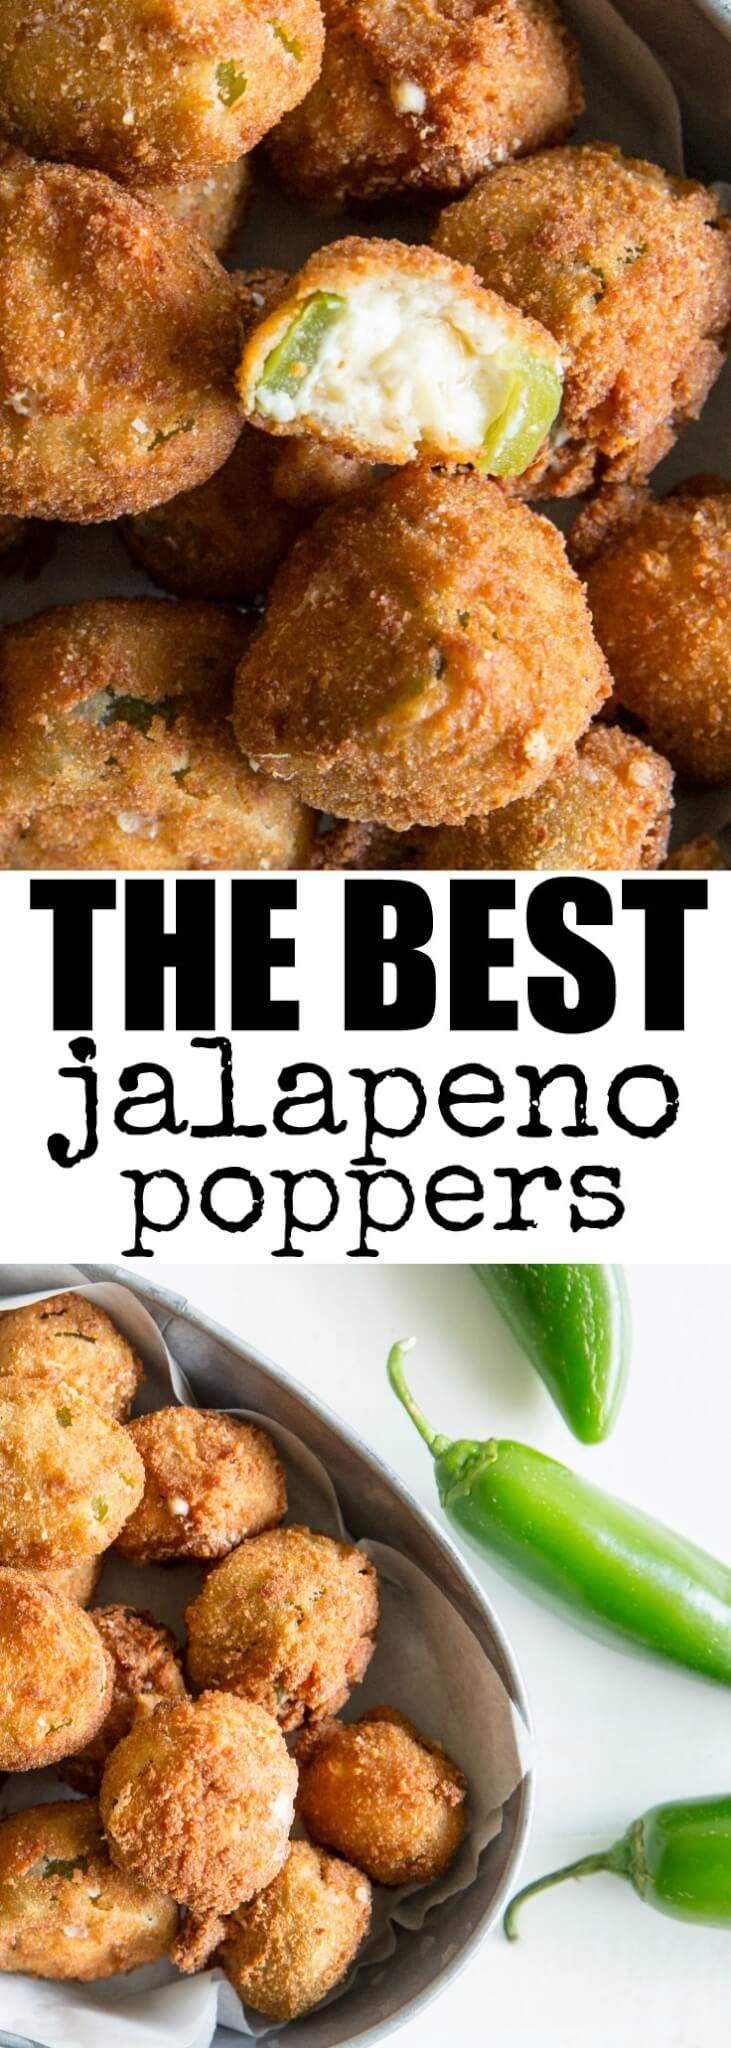 Bite-sized Jalapeno Poppers with an extra-crunchy coating and two kinds of cheese in the filling! Your favorite flavors without the exploding peppers. via @culinaryhill